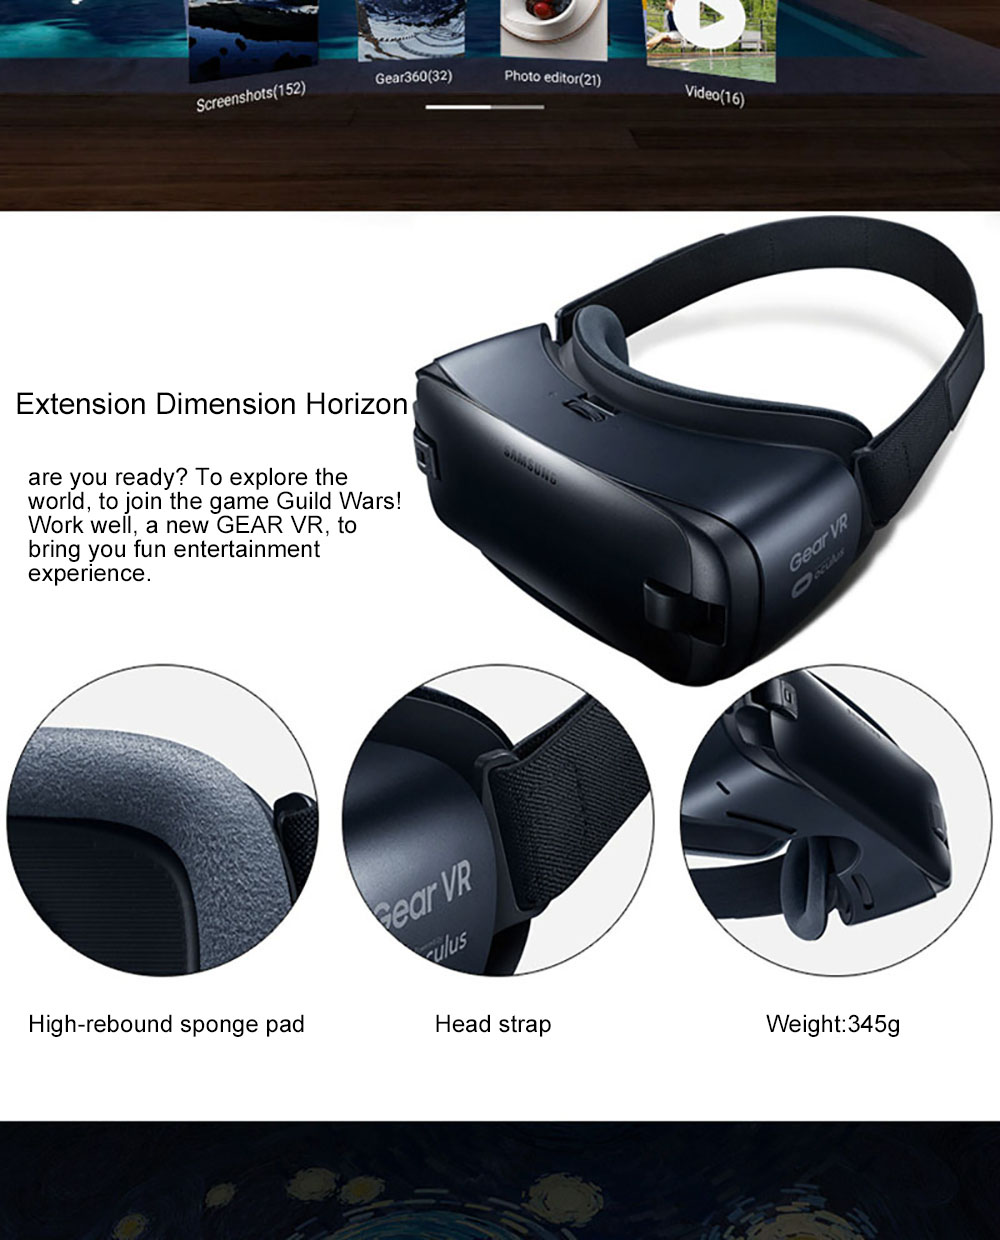 Gear VR 4.0 3D Glasses Gyro Sensor Virtual Reality Helmet Built For Samsung Galaxy Note 7 S6 S6 Edge+ S7 S8 S8plus S9  S7Edge